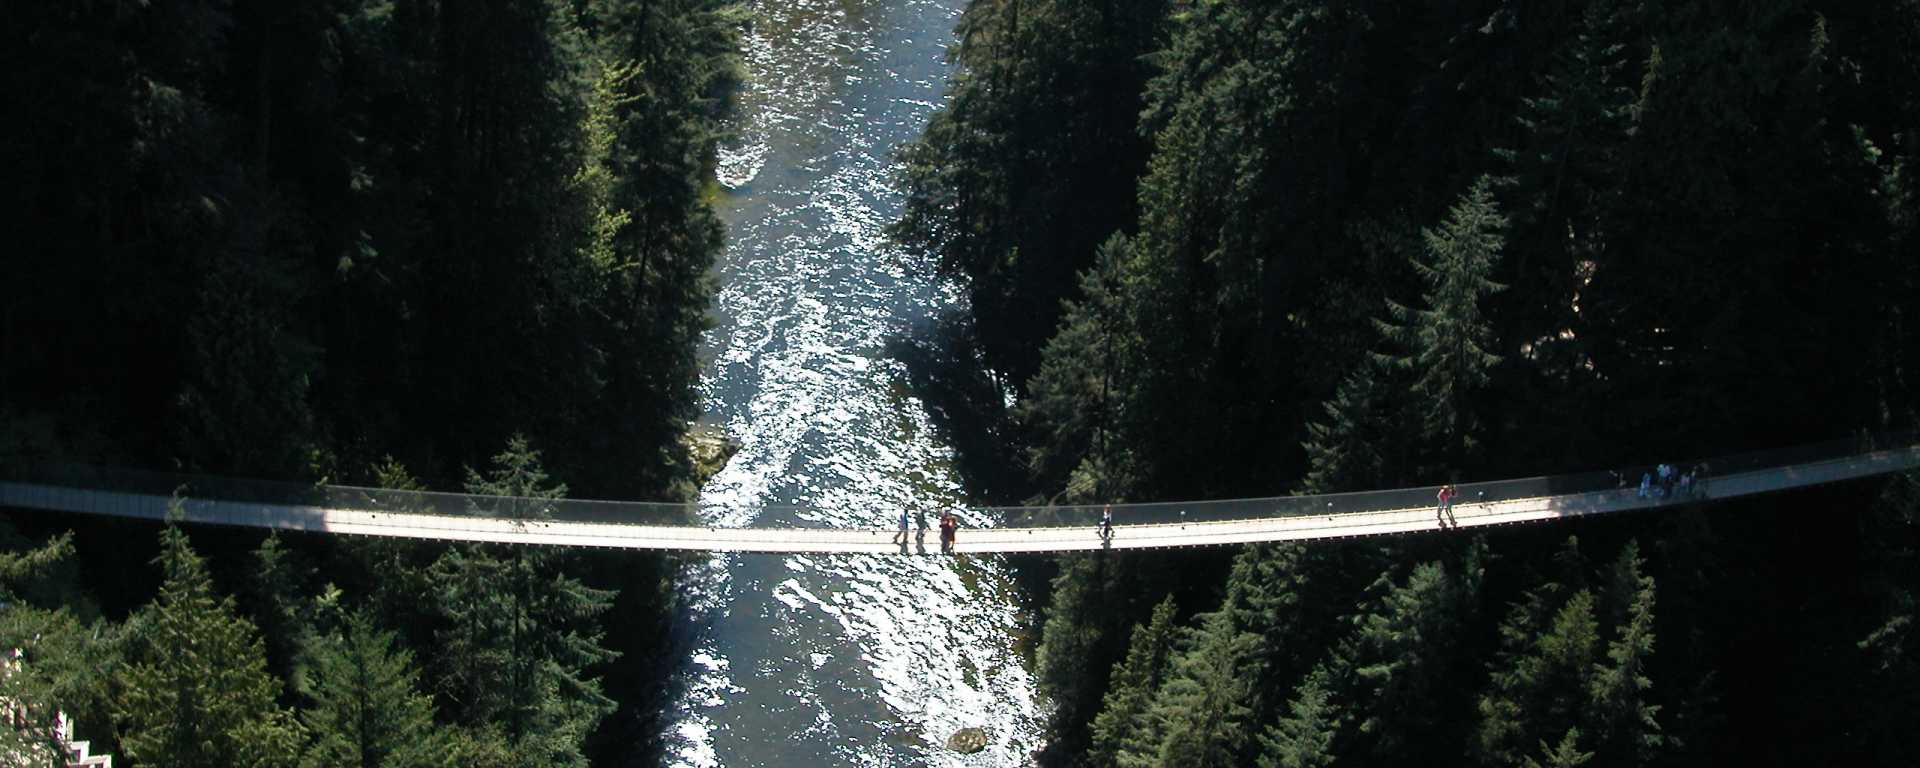 Capilano Suspension Bridge Park Guide